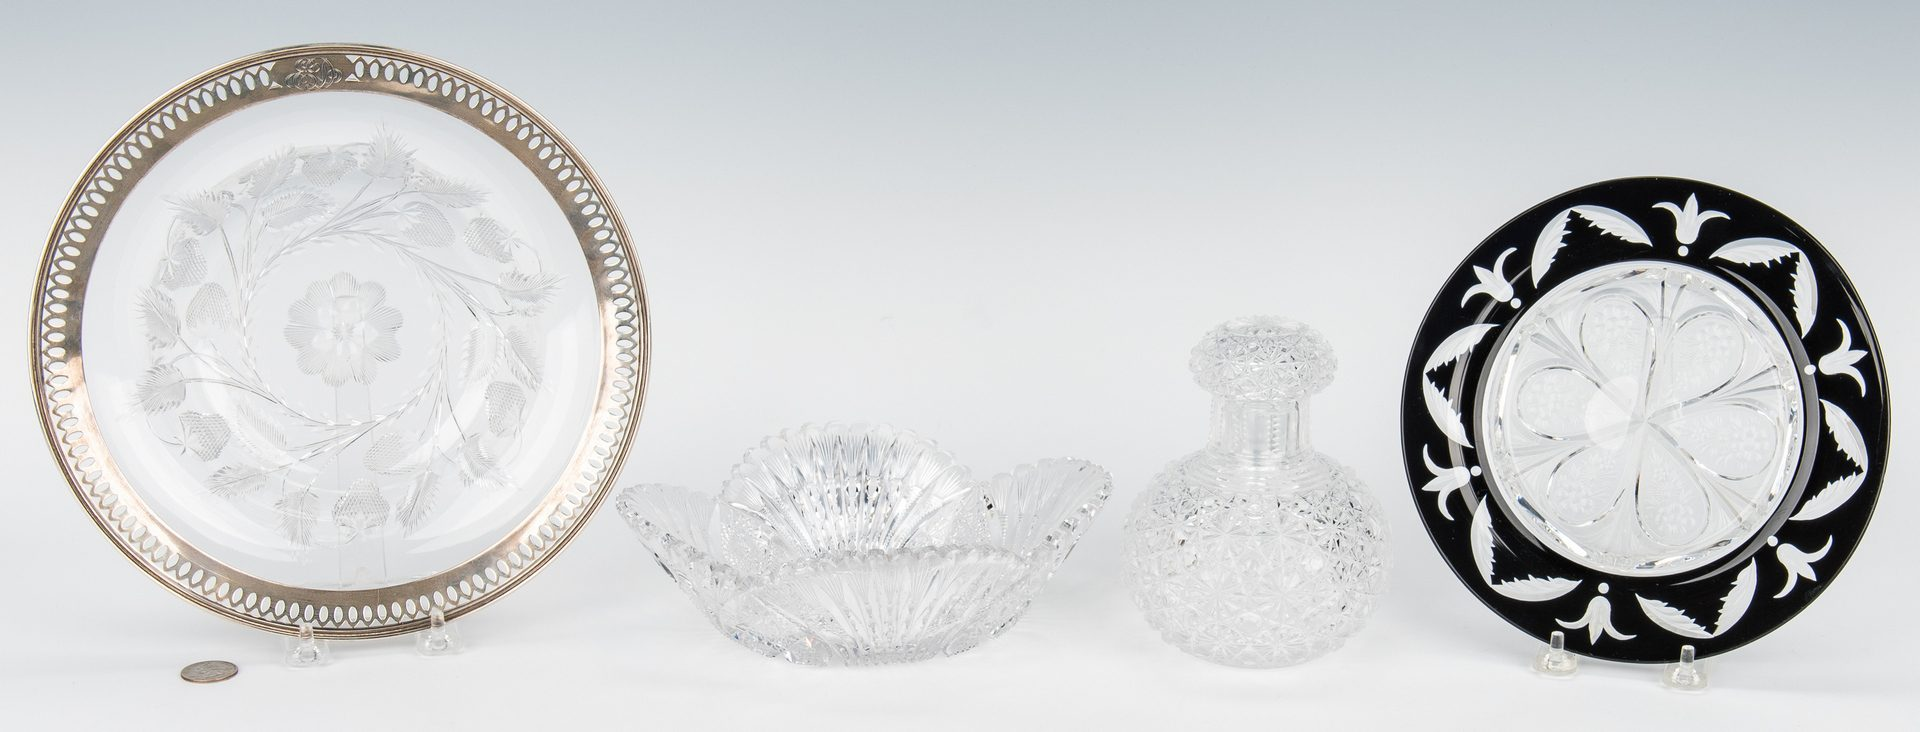 Lot 133: 4 Cut Glass Items, incl. Steuben, Reed & Barton